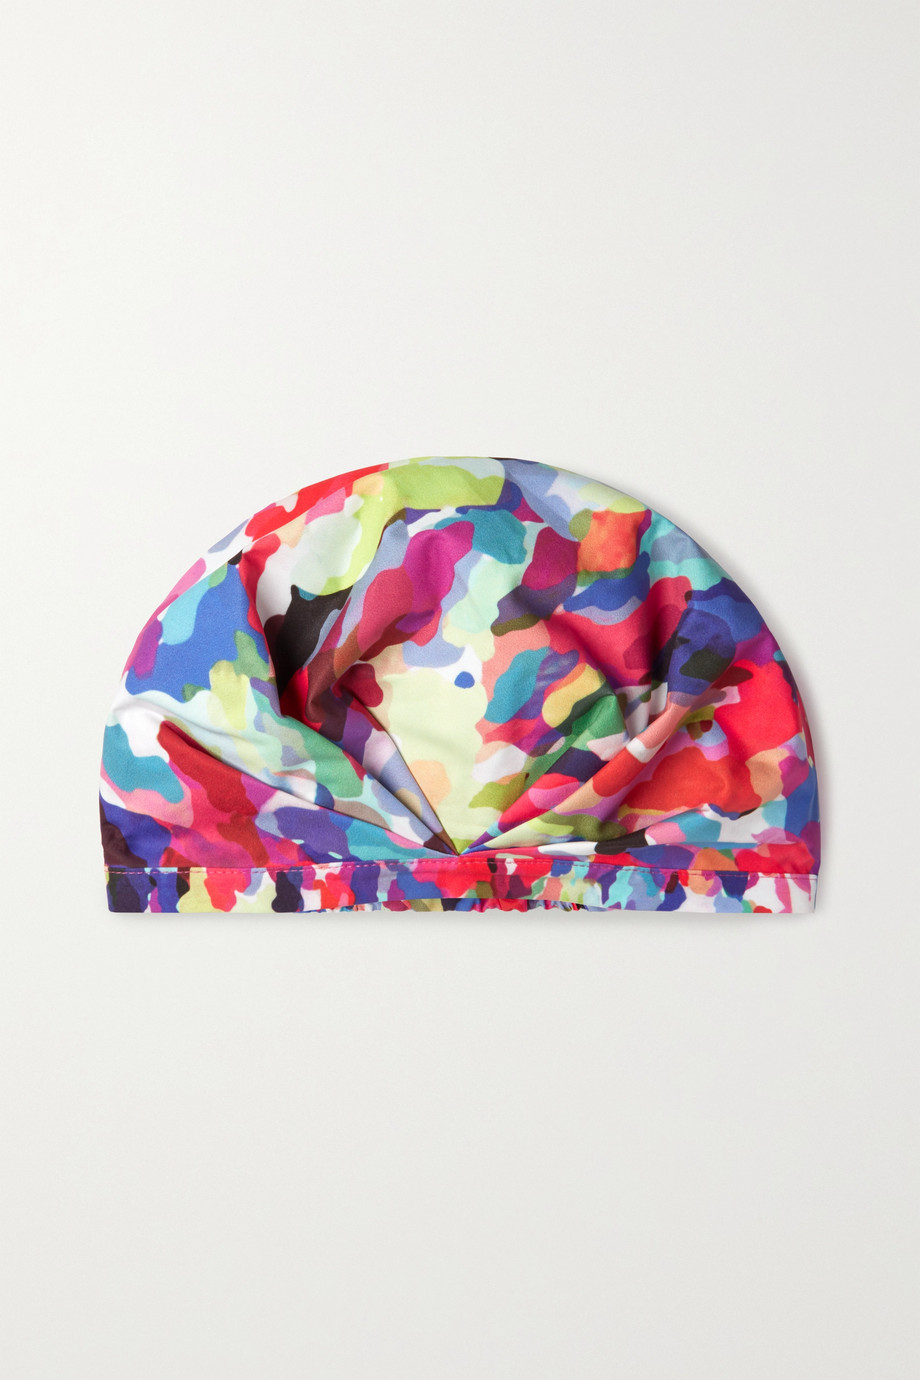 SHHHOWERCAP The Fetti printed shower cap